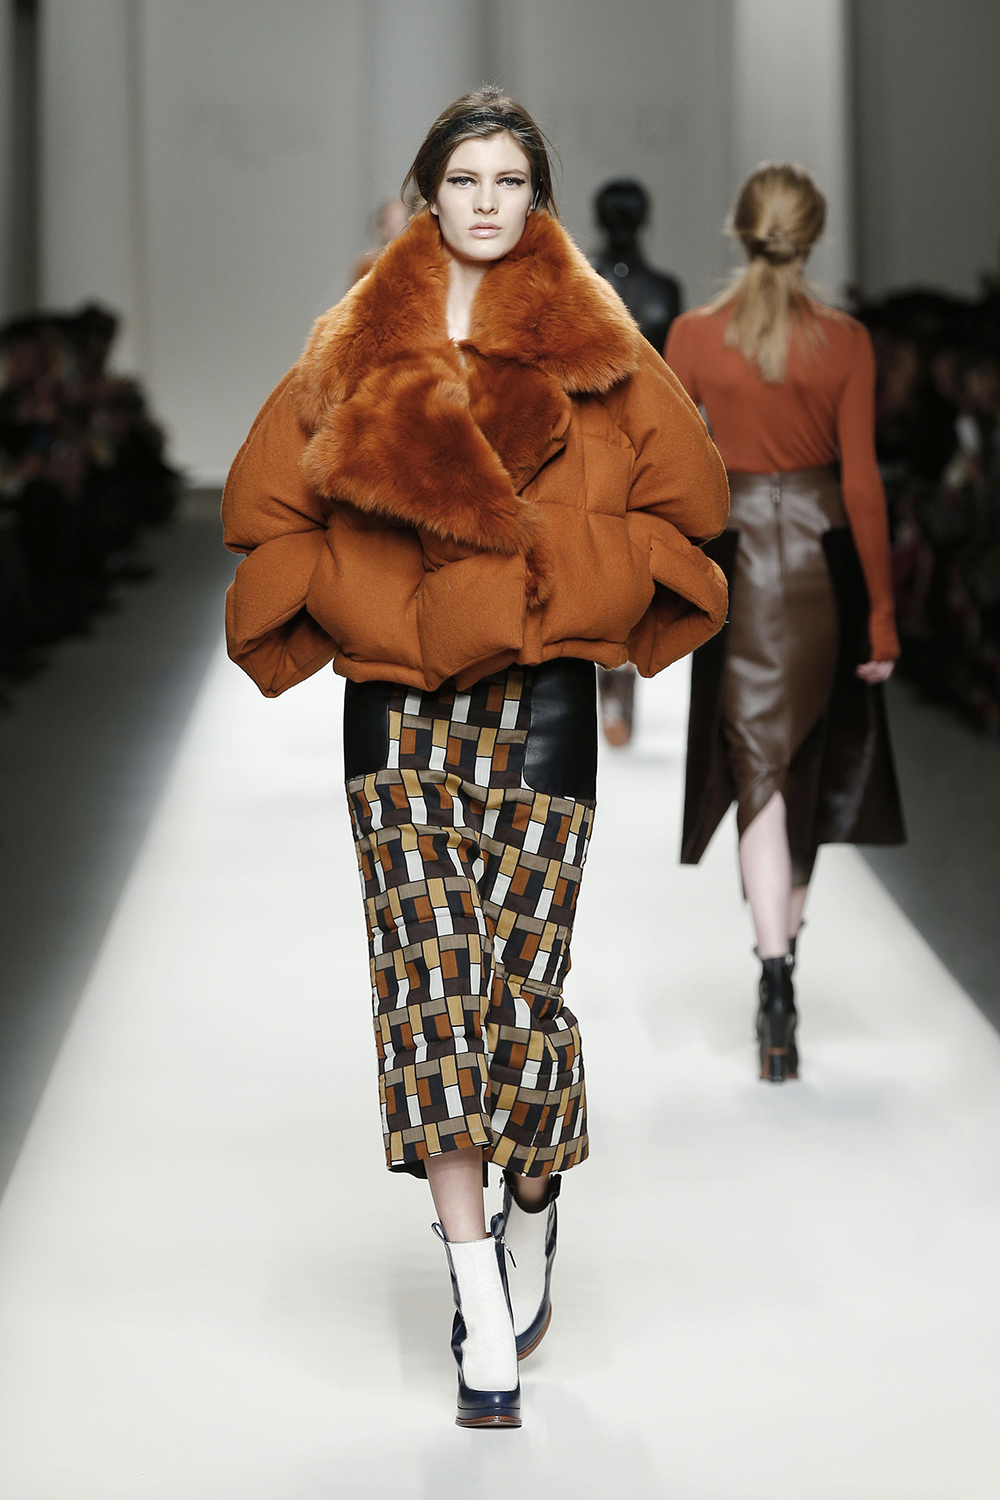 Rust orange wool gauze jacket with shearling collar and long printed wool skirt with leather pockets.By Fendi